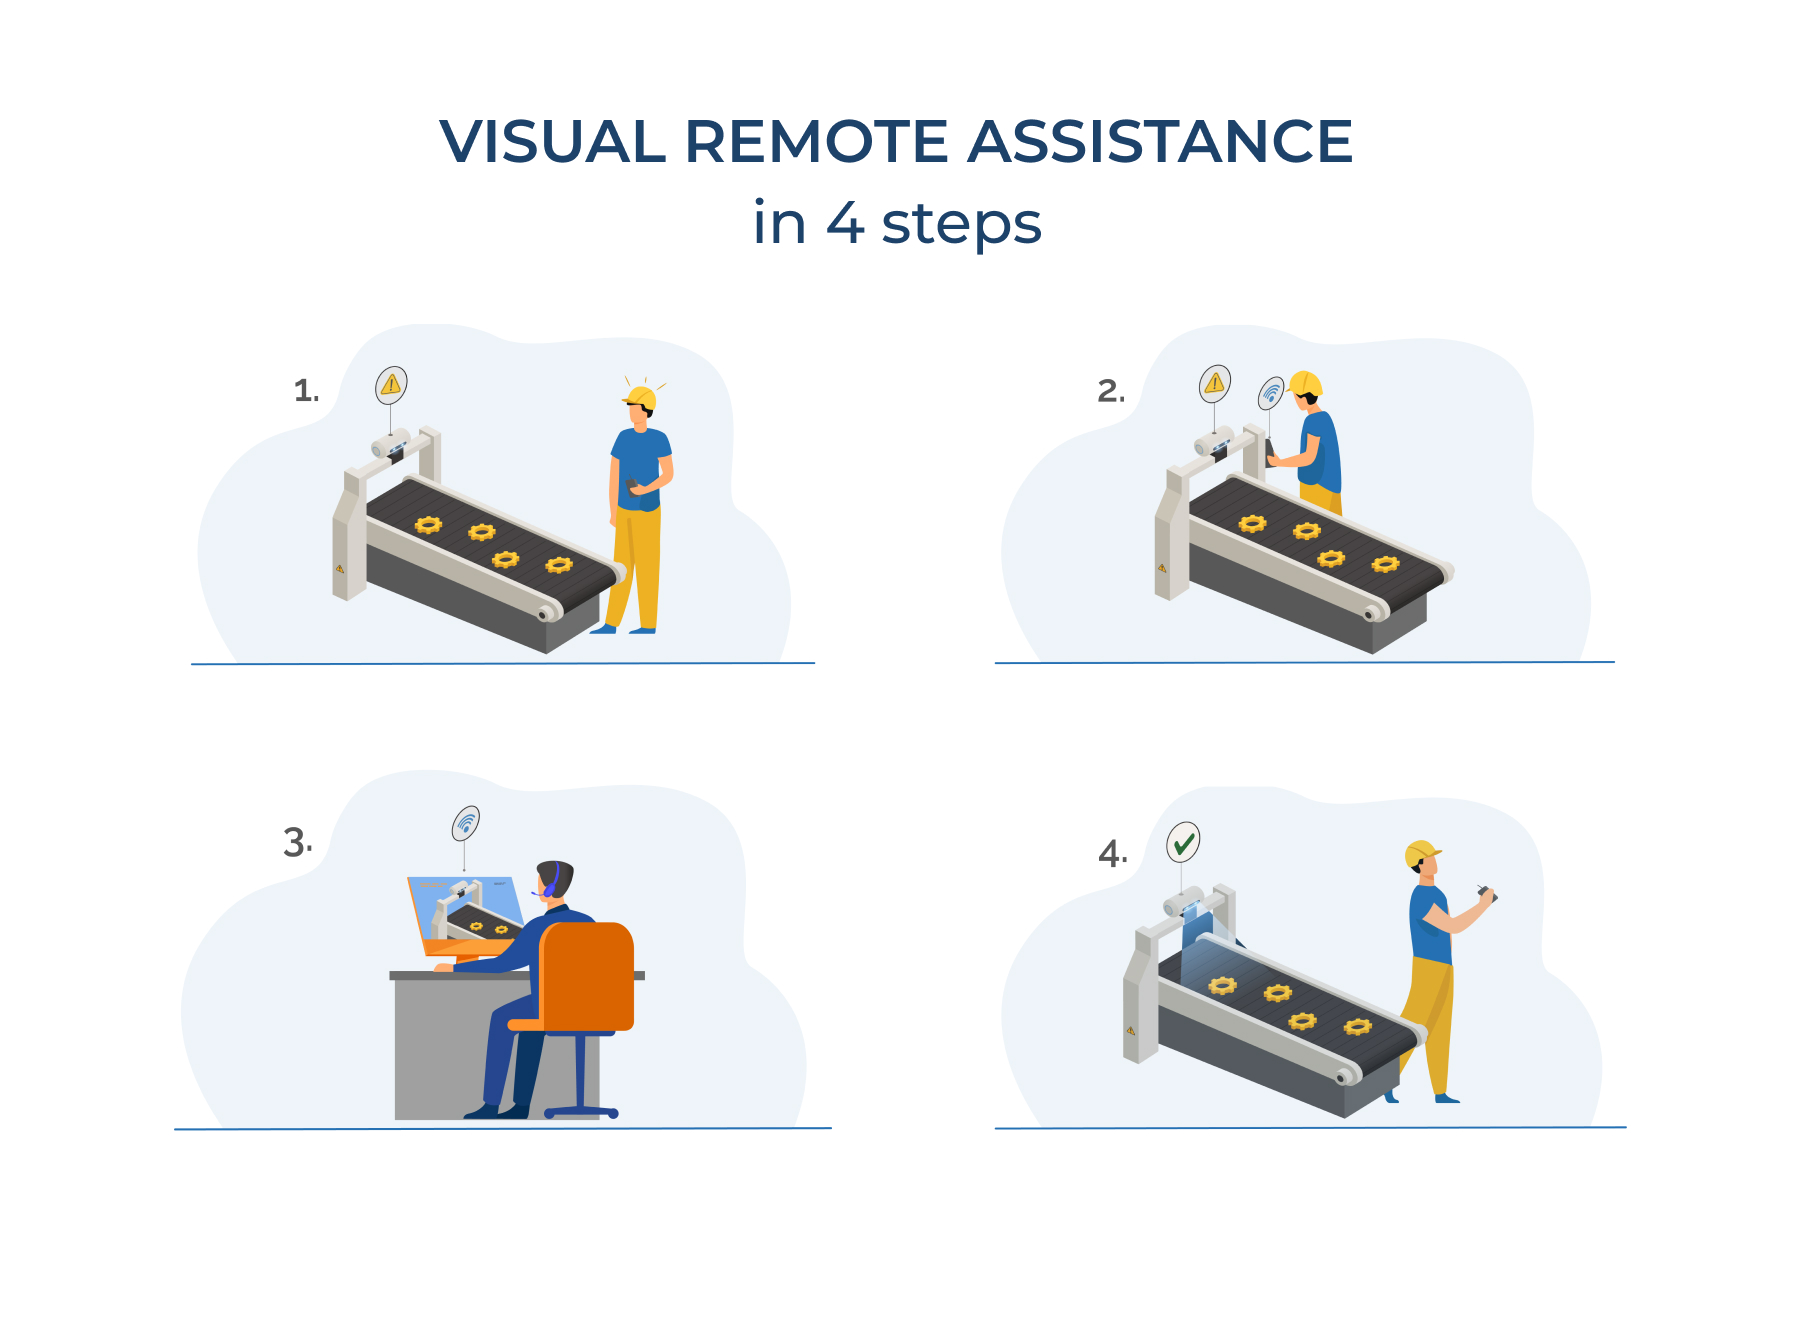 Visual Remote Assistance in 4 steps